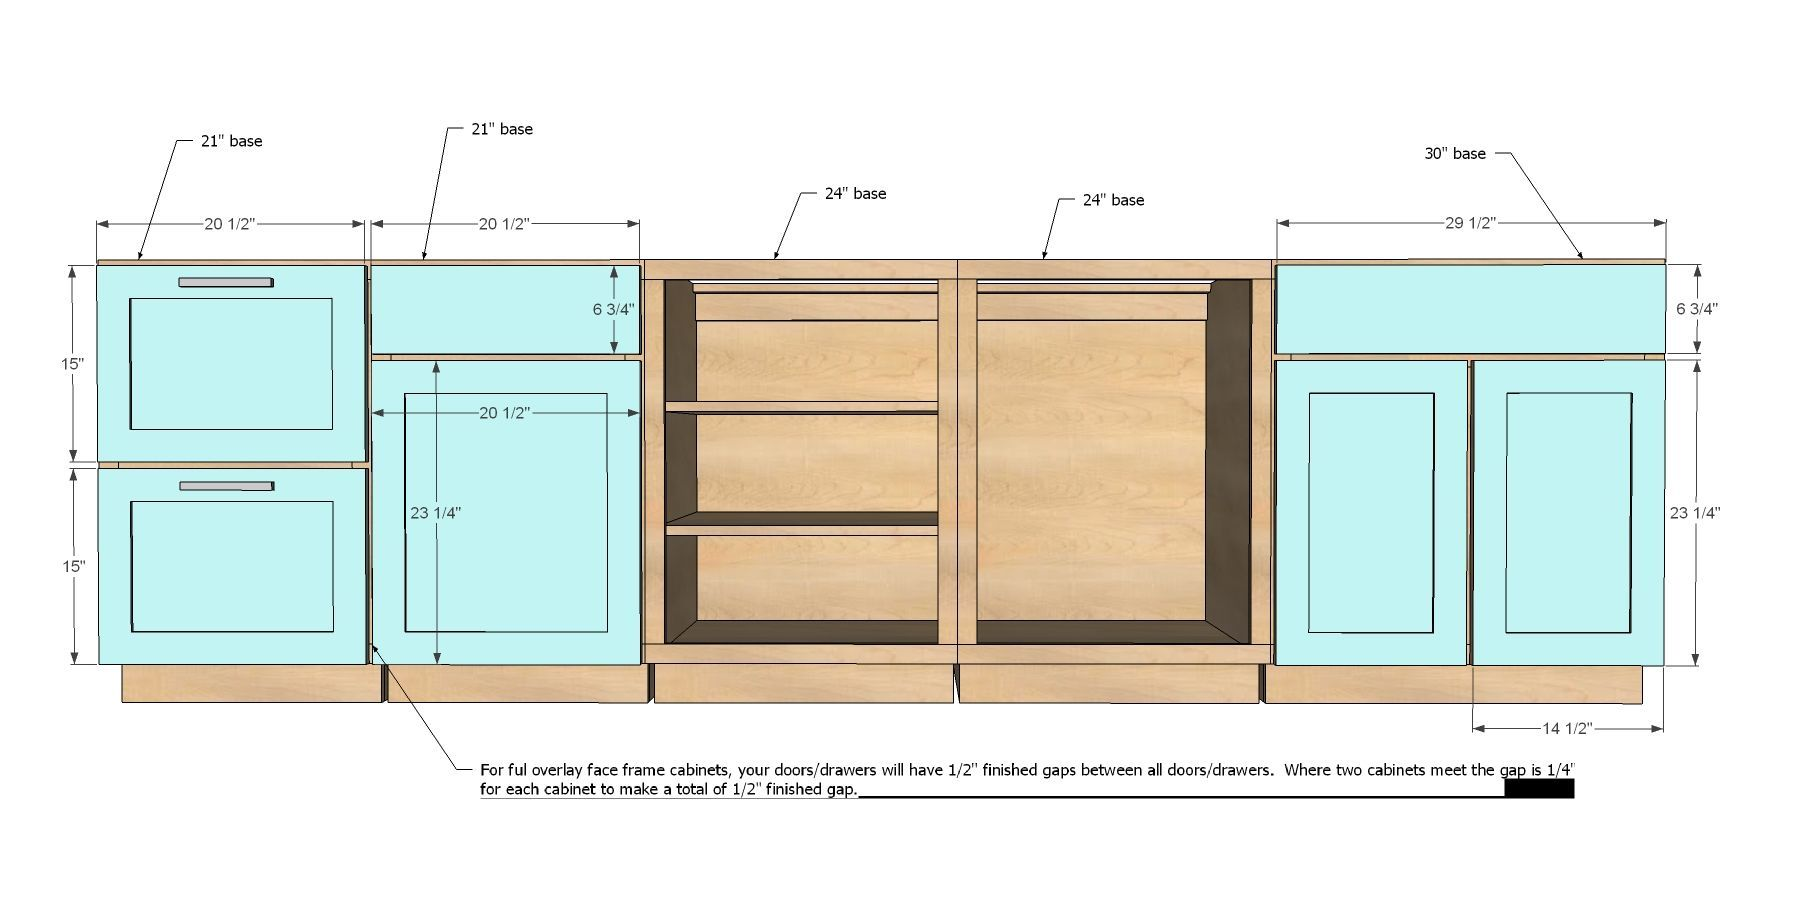 Ana White Build A Face Frame Base Kitchen Cabinet Carcass Free And Easy Diy Project And Kitchen Cabinets Height Kitchen Cabinet Plans Kitchen Base Cabinets